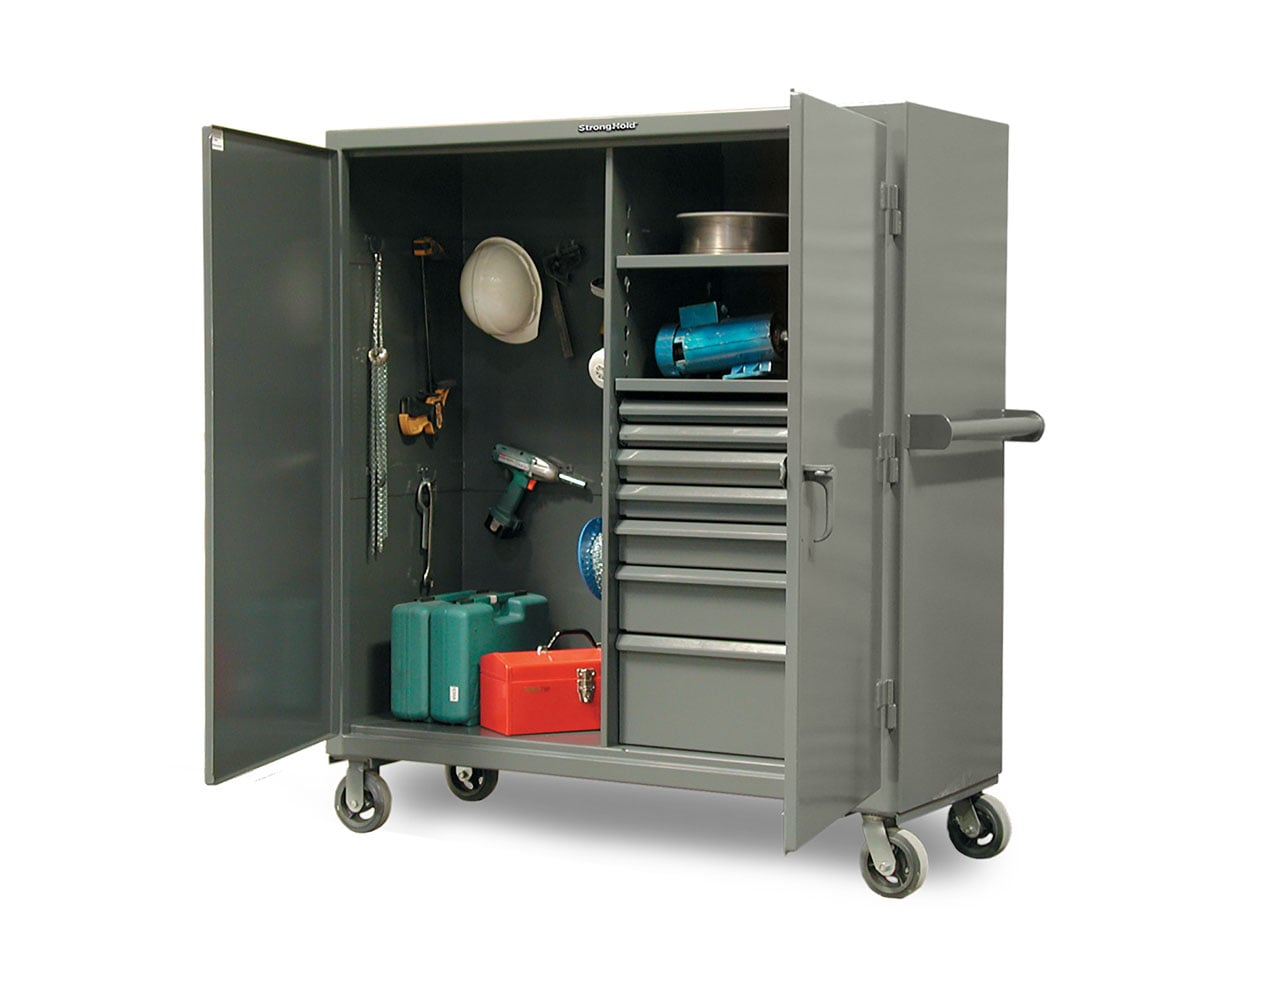 Extra Heavy Duty 12 GA Mobile Jobsite Cabinet with 7 Half-Width Drawers, 2 Shelves – 60 in. W x 24 in. D x 68 in. H